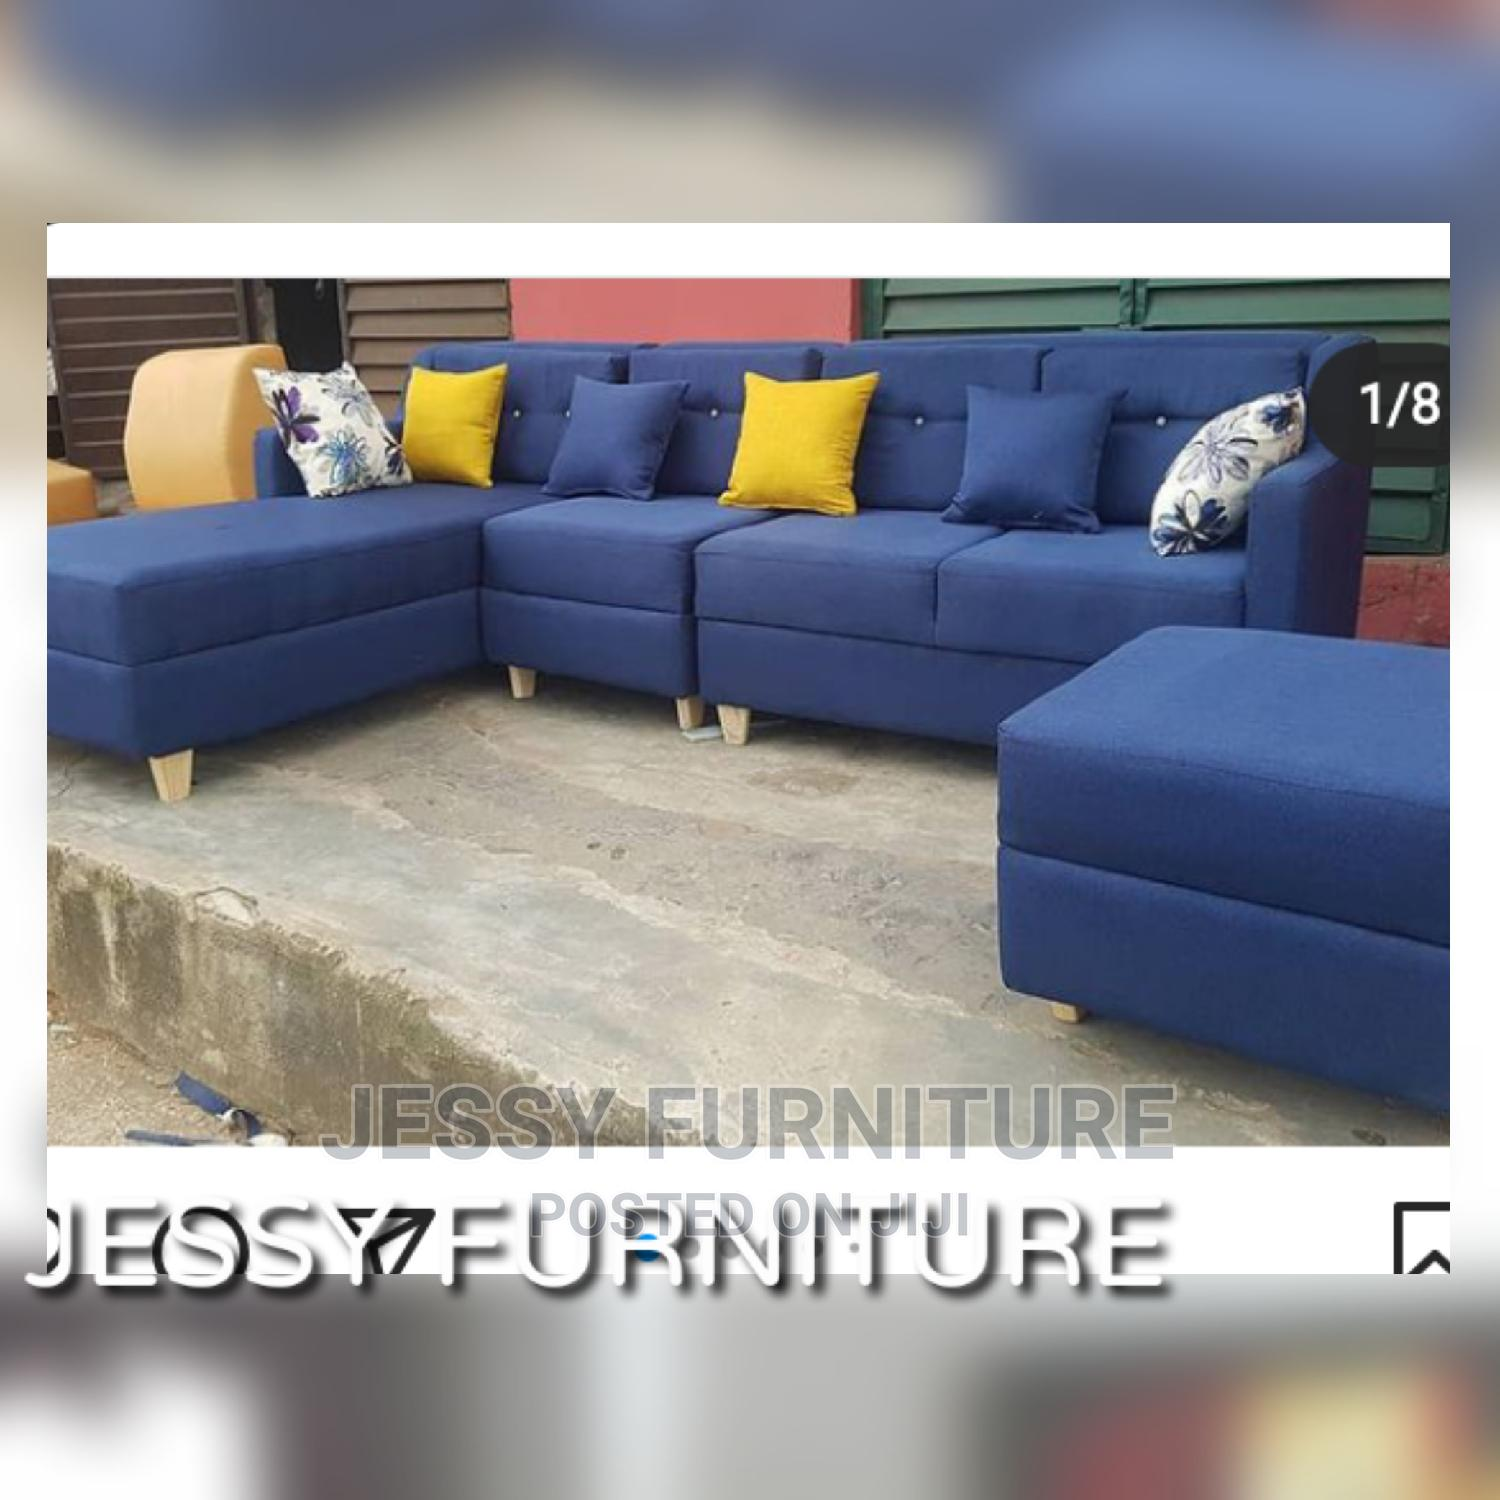 L-Shaped (7seater)Fabric Sofa With an Ottoman